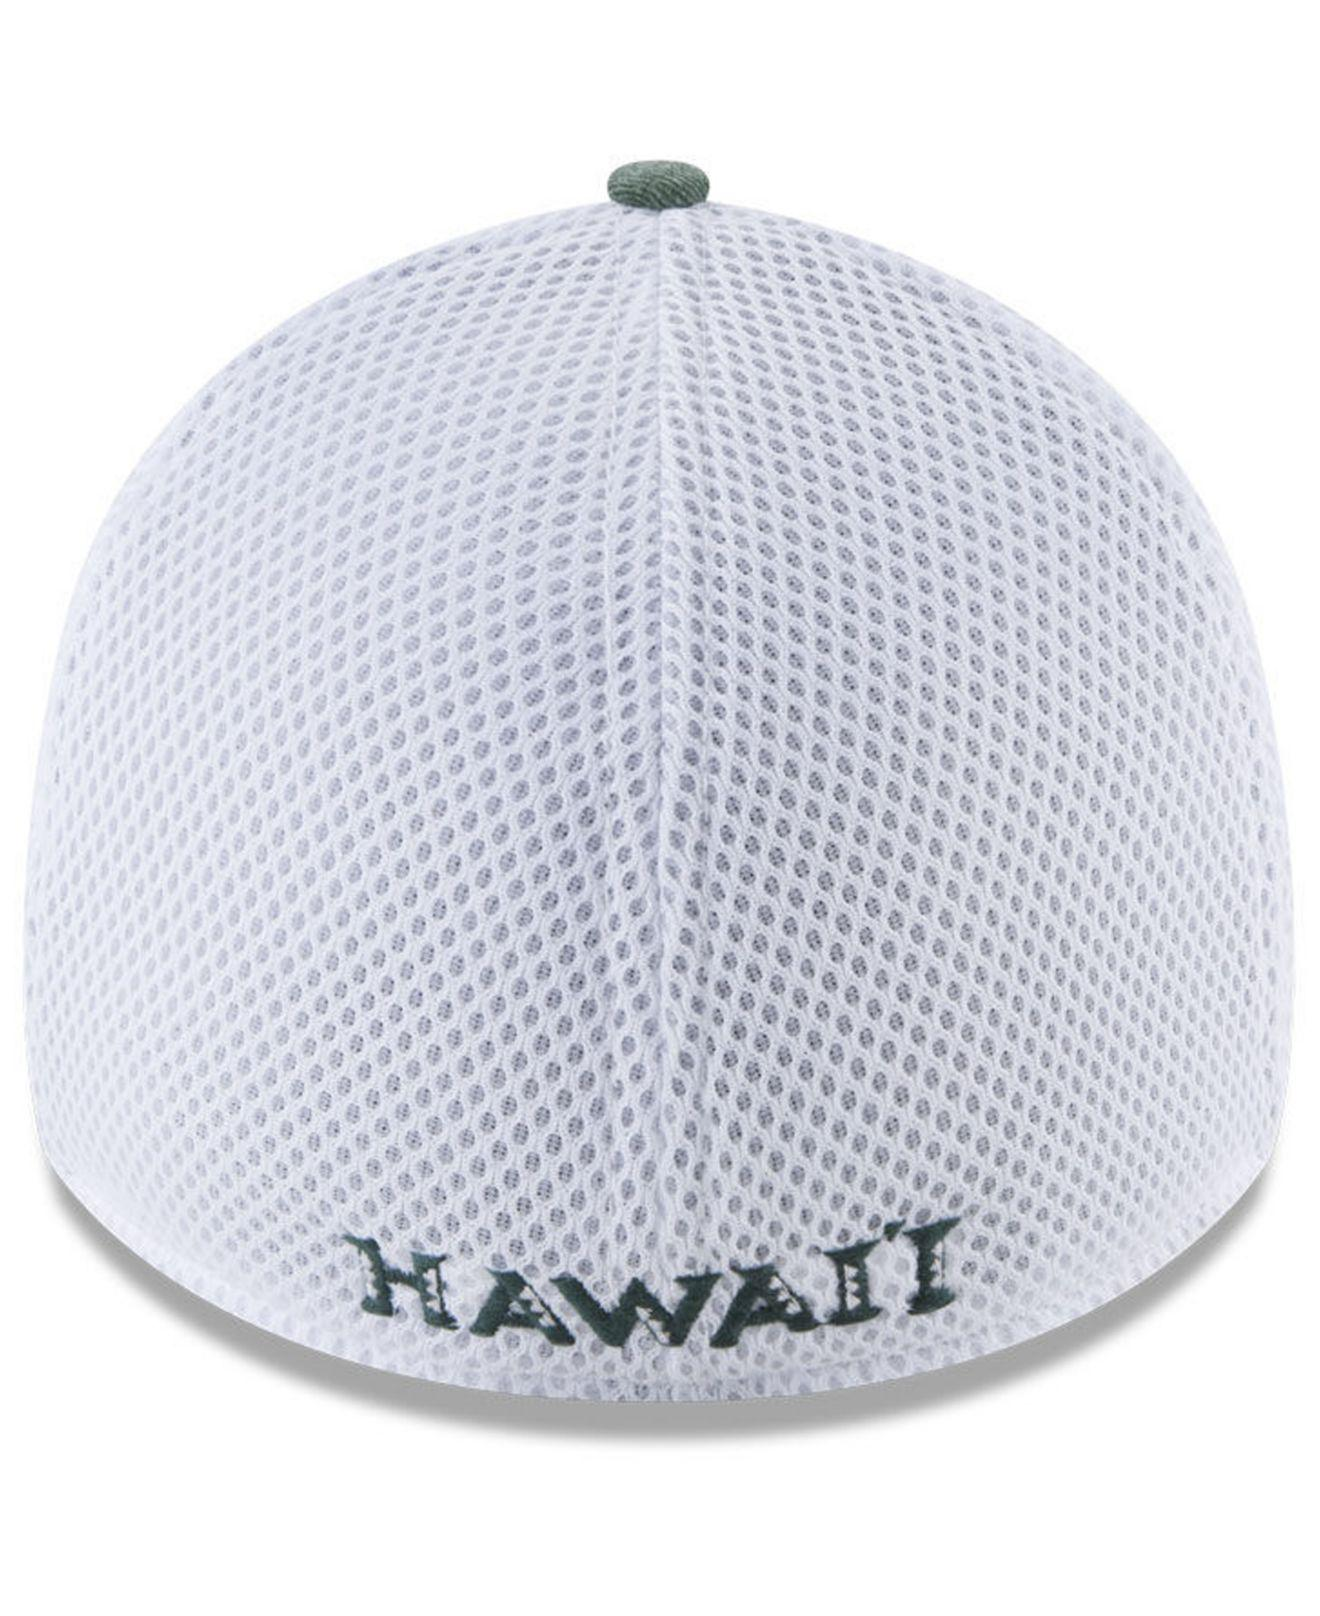 cheap for discount 75c0f 118ee ... pop flex 39thirty cap in black for men 048e4 1b81e  release date lyst  ktz hawaii warriors washed neo 39thirty cap in green for men fbc90 c3196